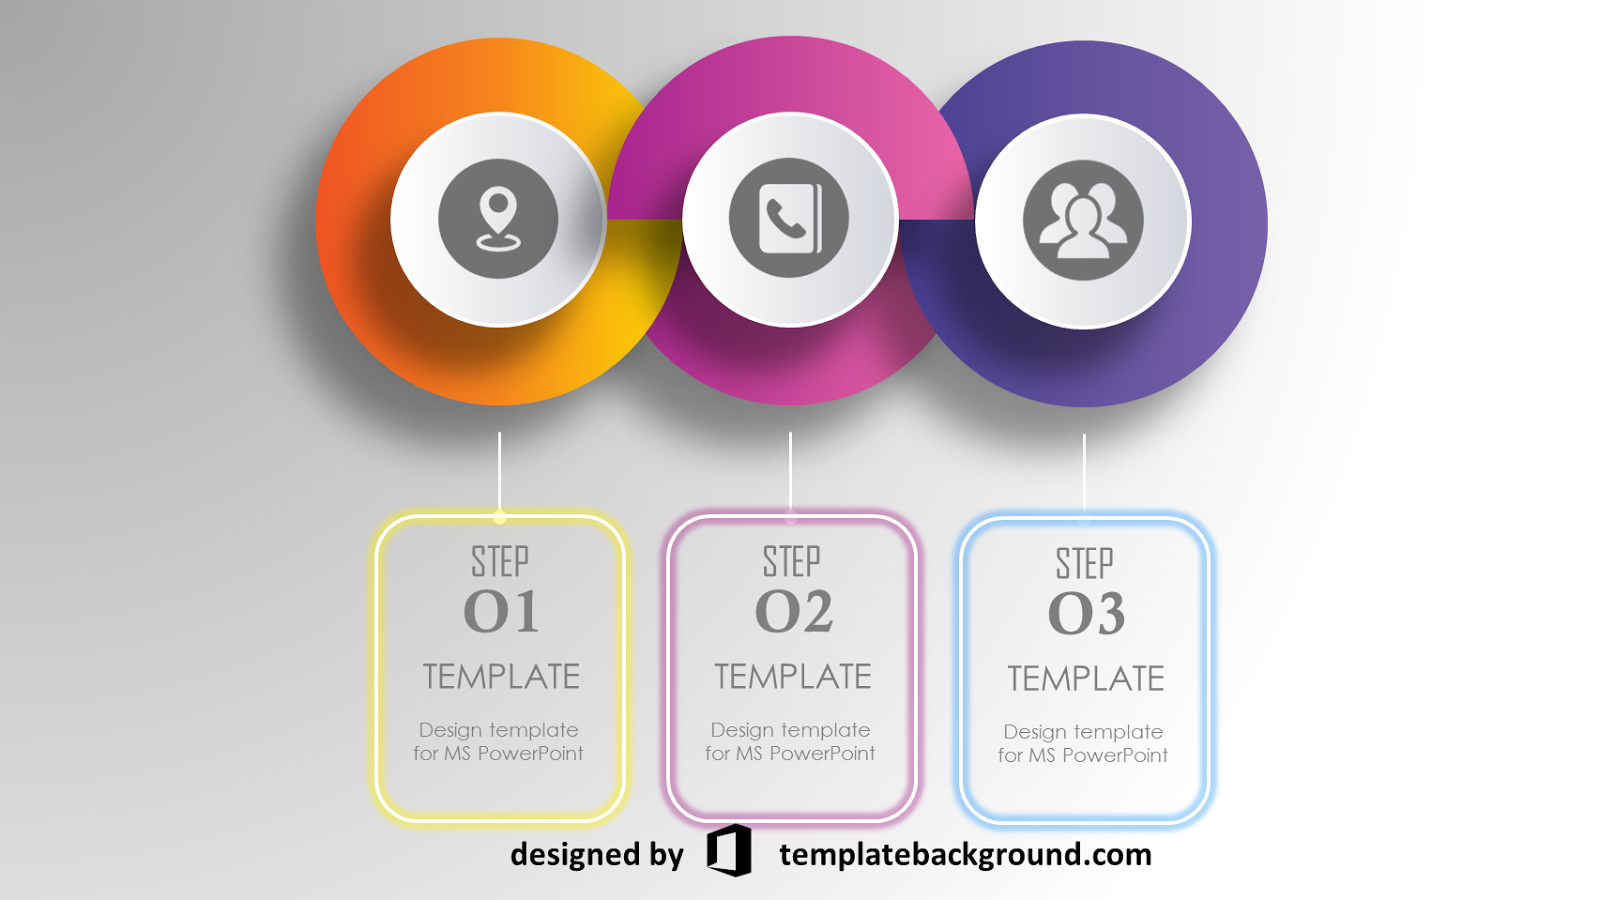 Free 3d animated powerpoint templates download tamplate ppt free 3d animated powerpoint templates download toneelgroepblik